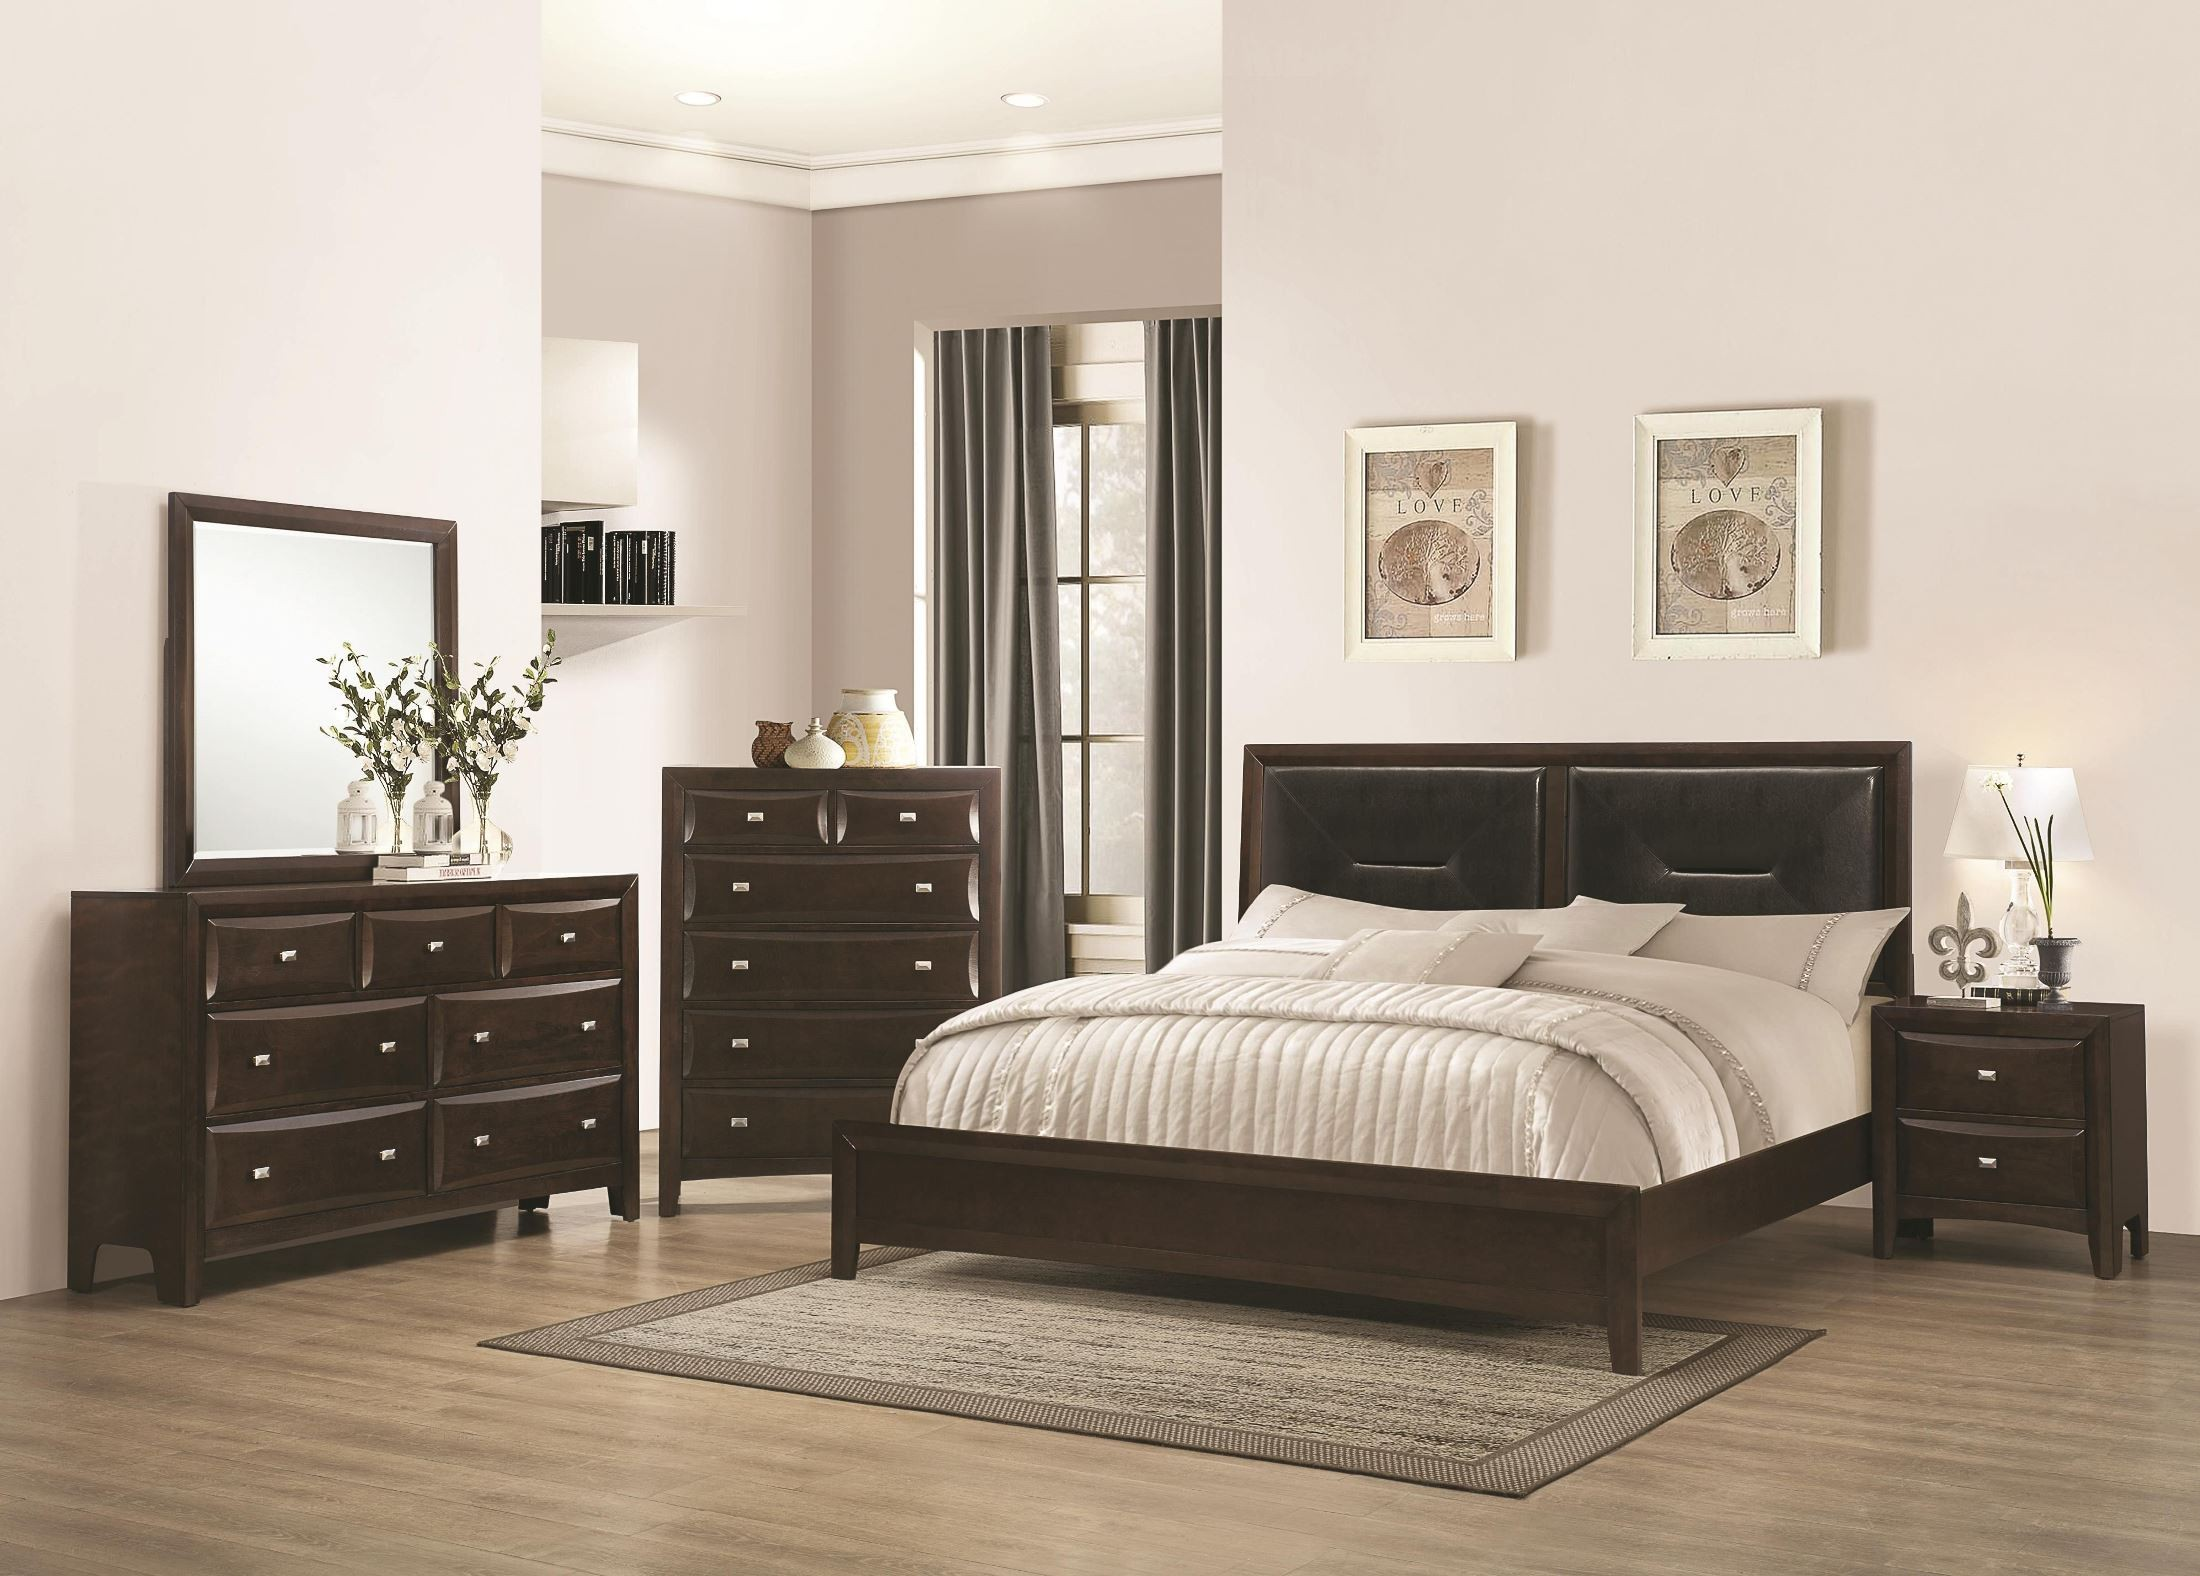 cloverdale cappuccino low profile upholstered bedroom set